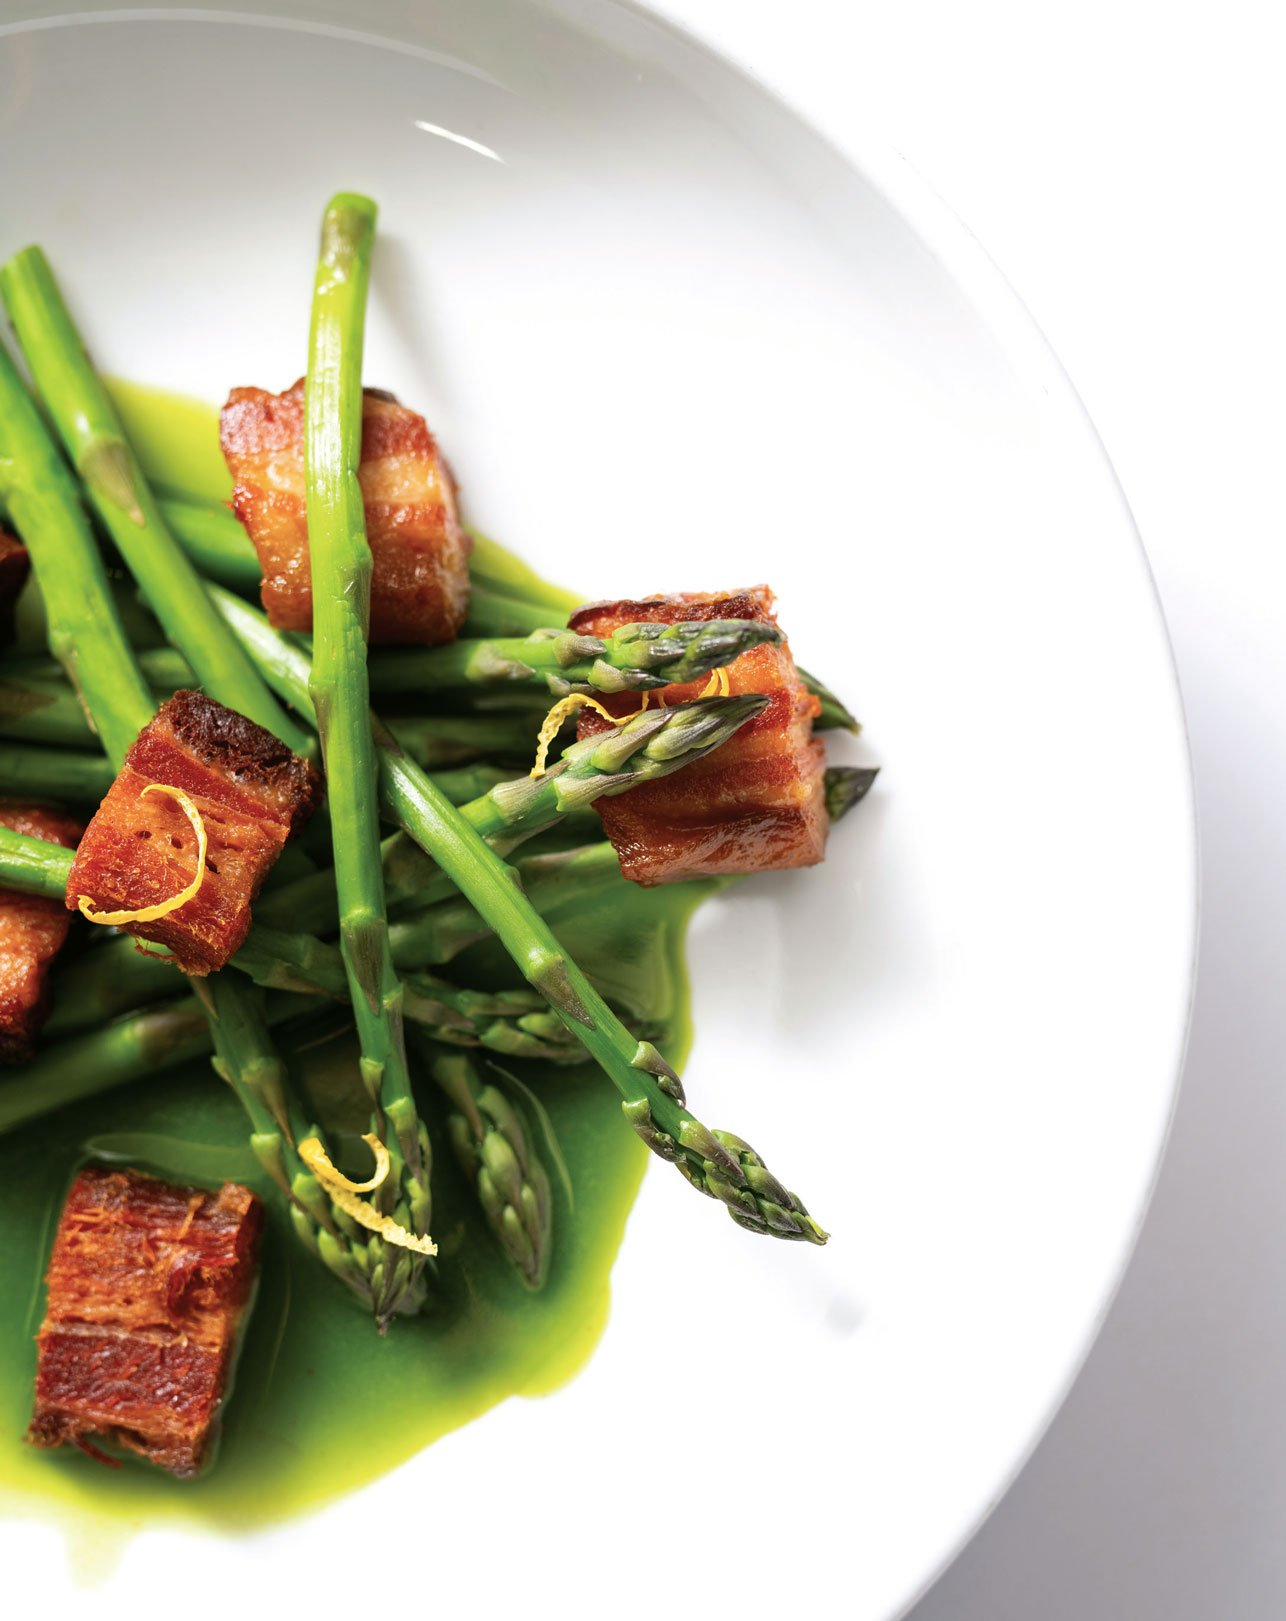 Pig and Sprout asparagus dish